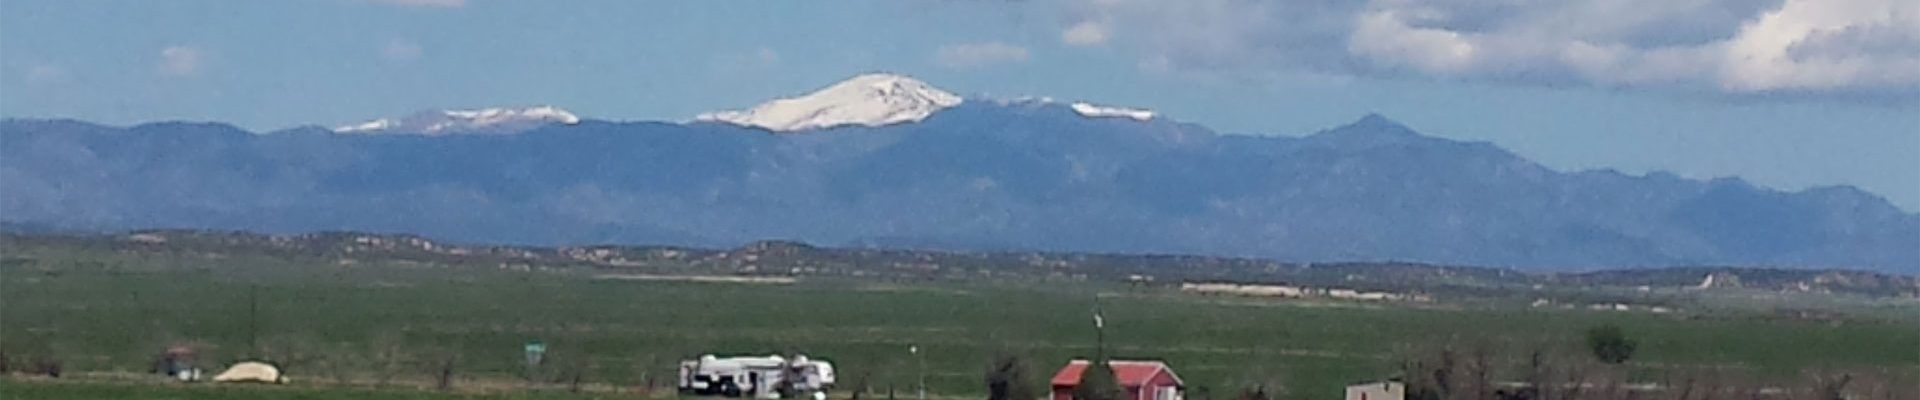 View of Pikes Peak from Pueblo West CO